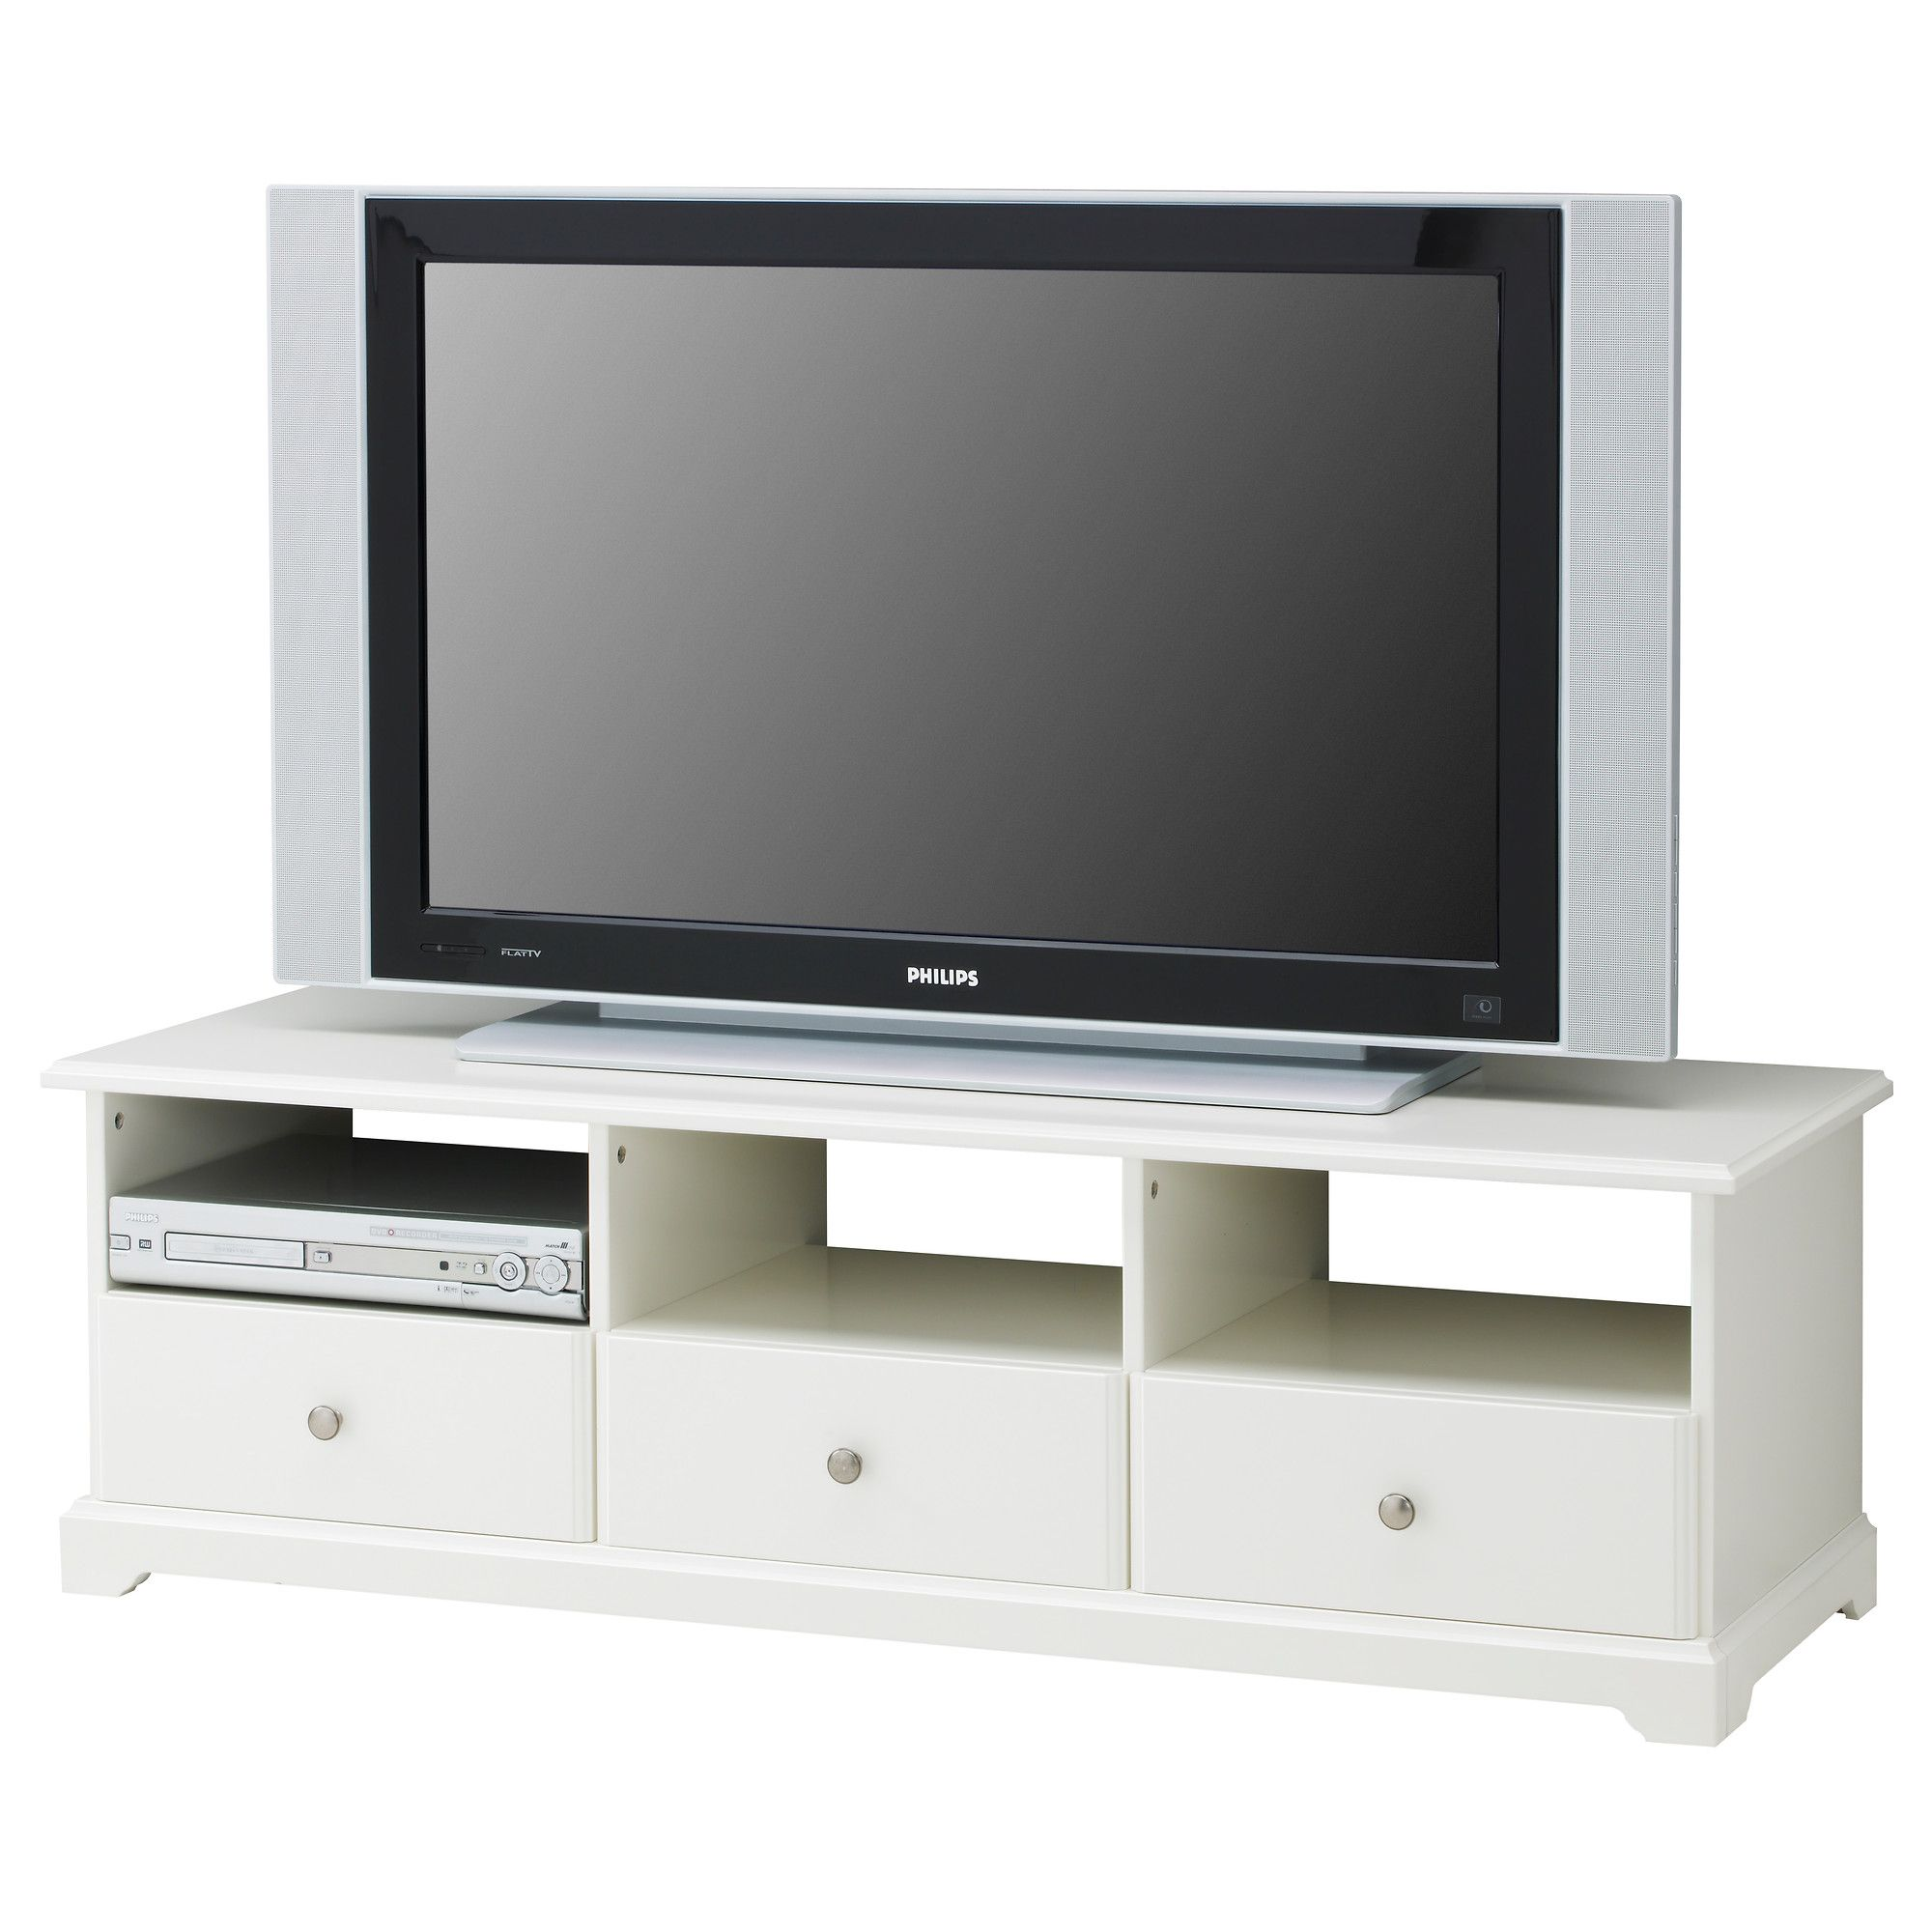 Ikea Liatorp Tv Bank Liatorp Tv Bänk Vit